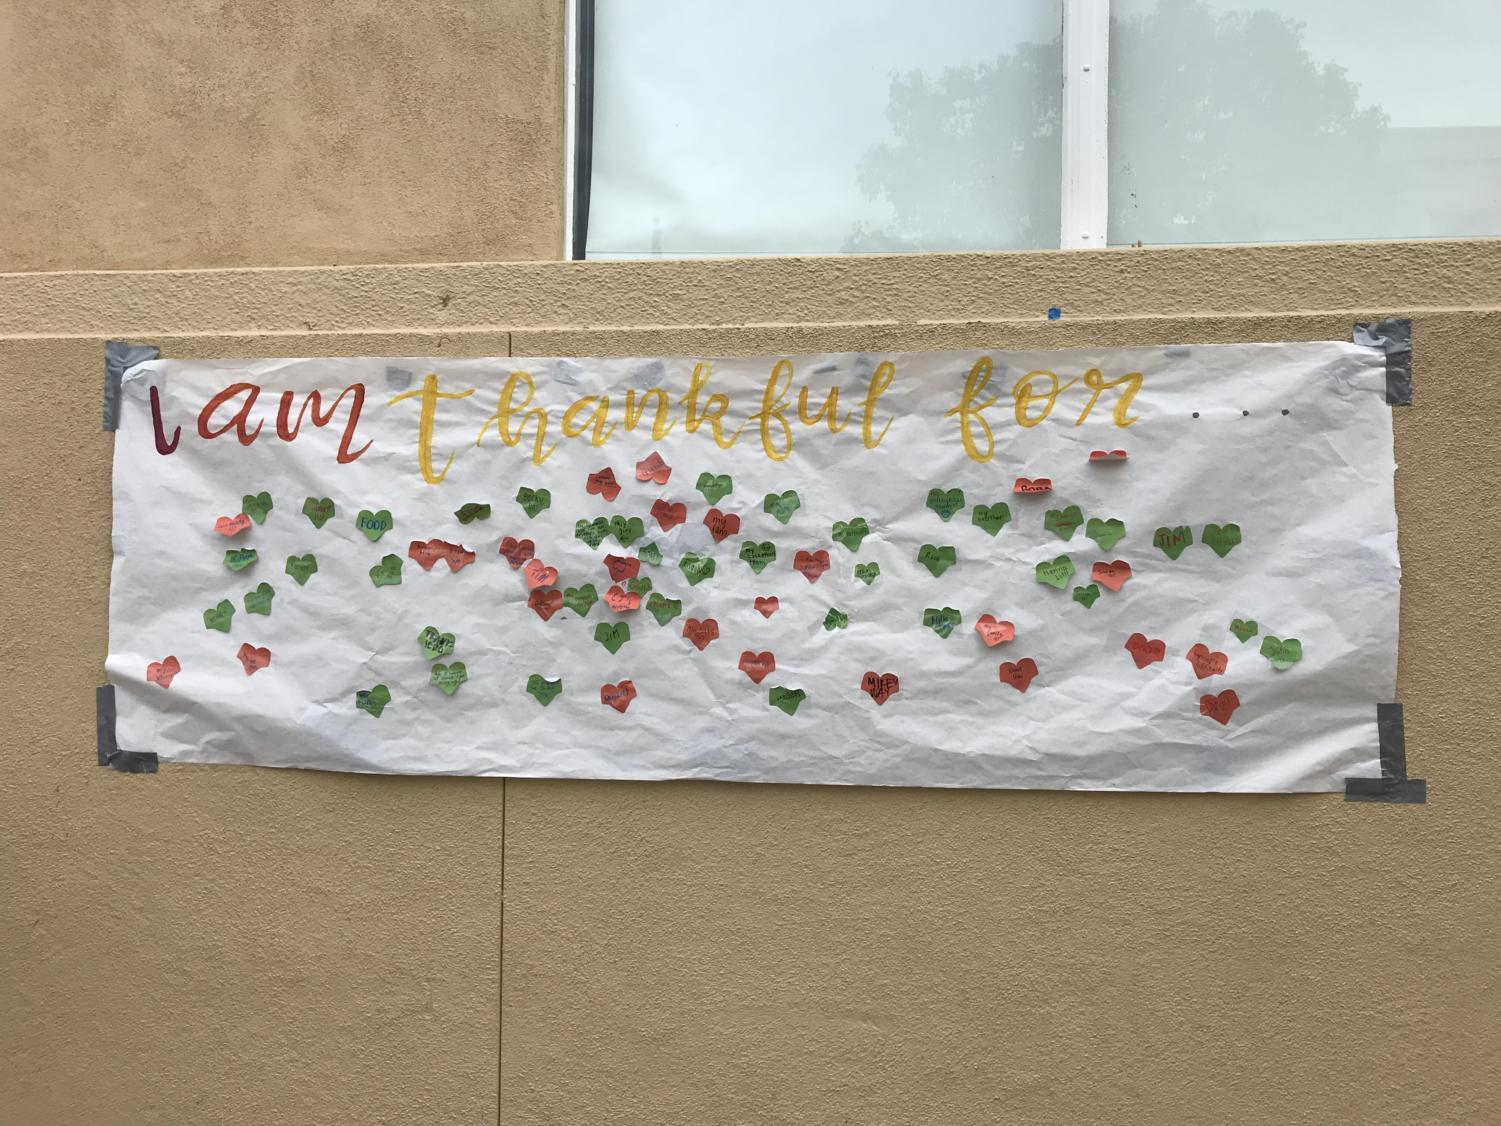 A+banner+in+the+center+of+Carlmont%27s+campus+allows+students+to+leave+notes+containing+what+they+are+thankful+for.